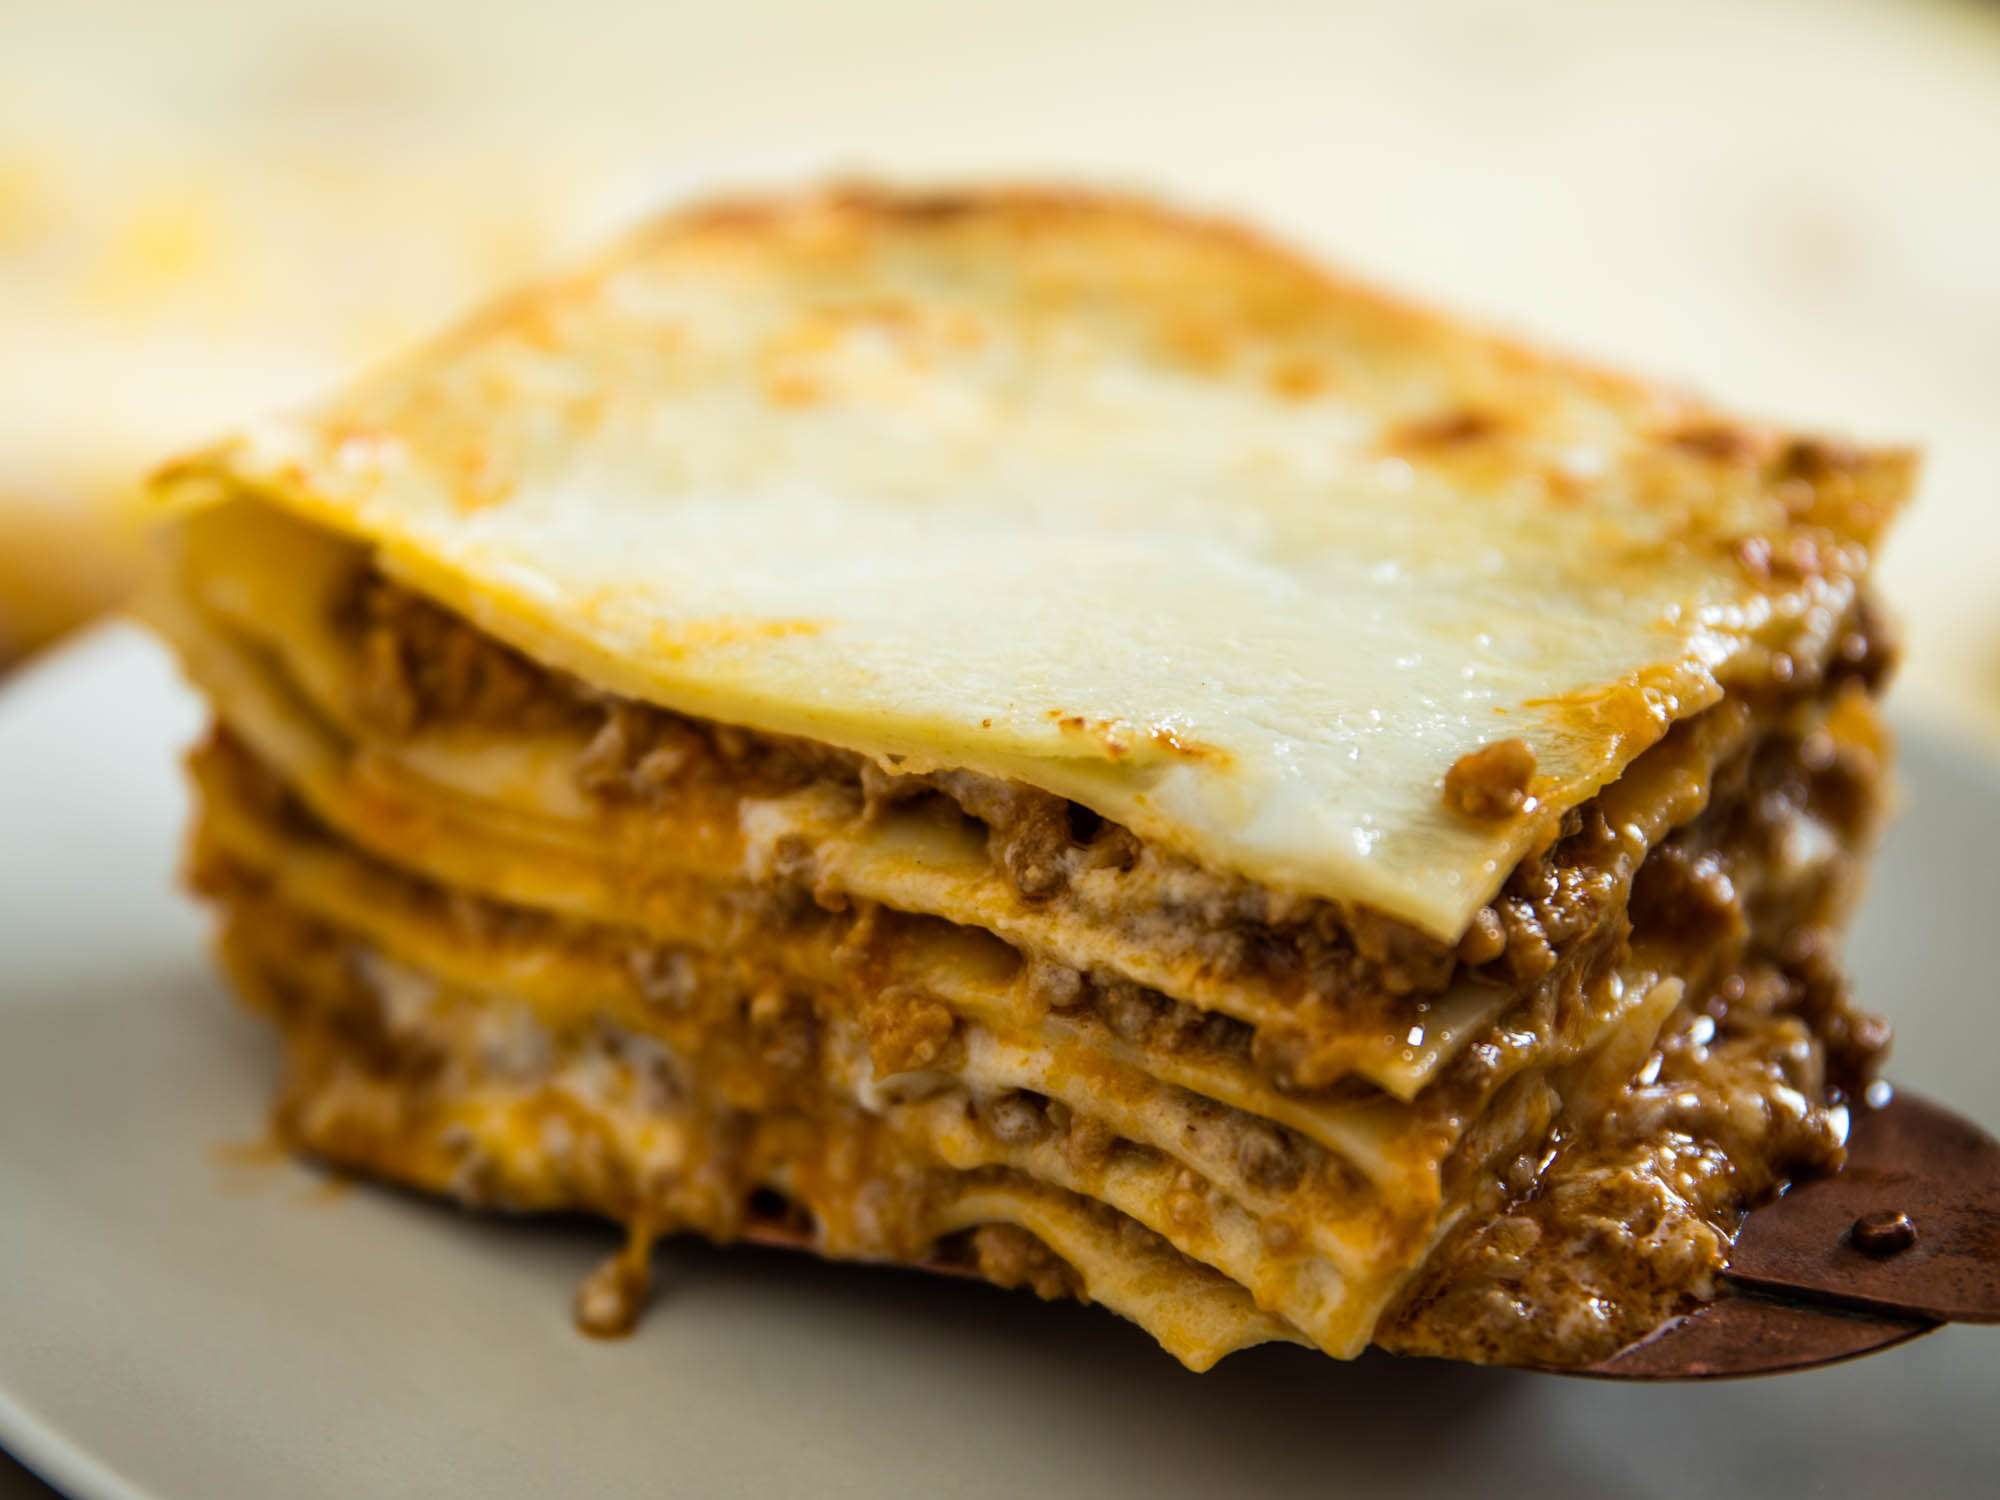 A serving of lasagna bolognese being placed on a plate.